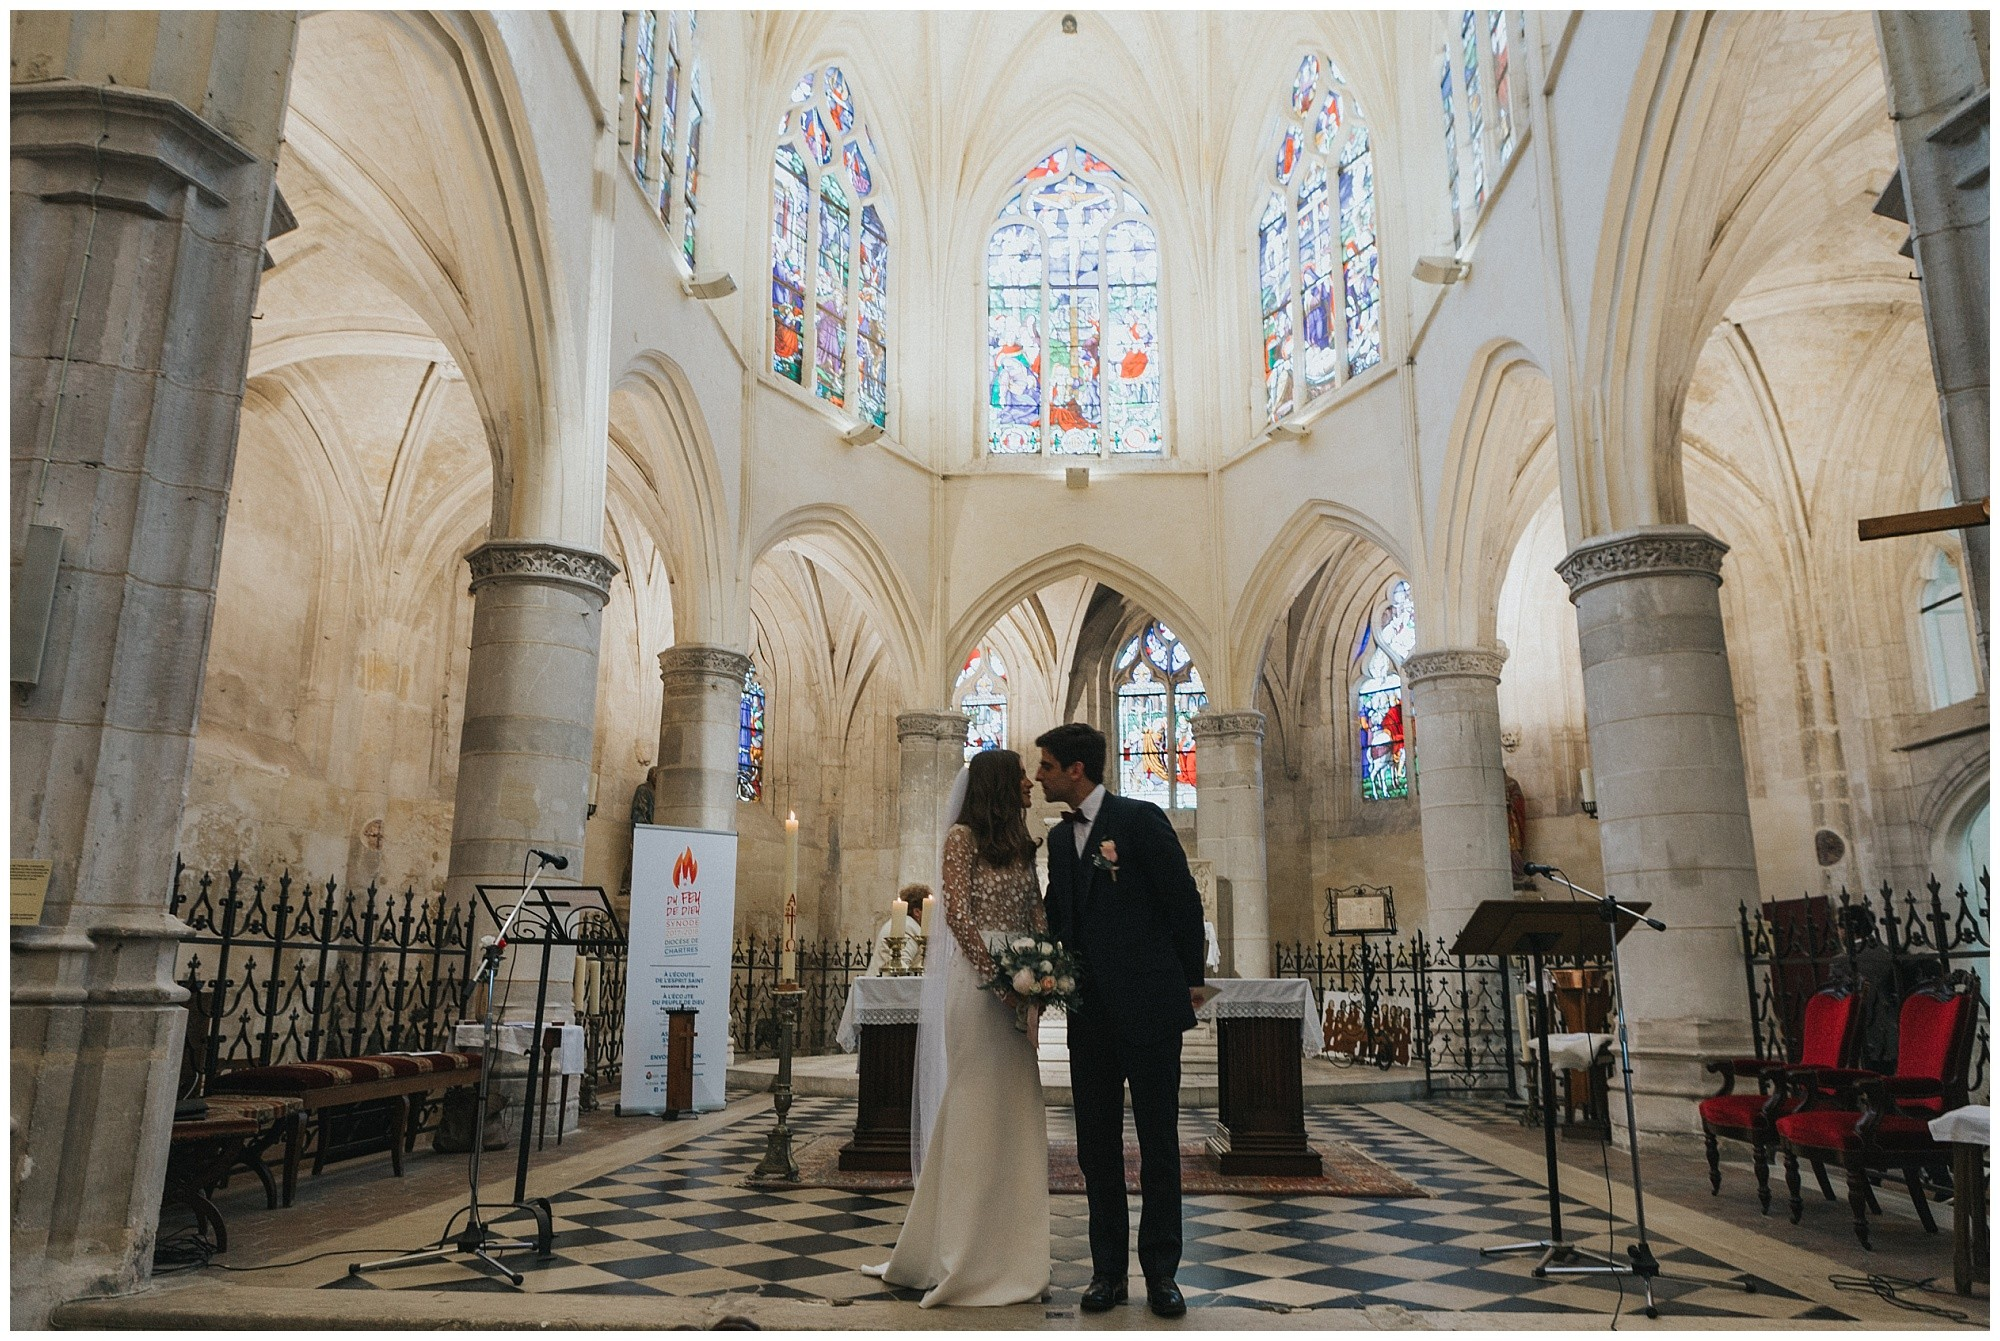 Kateryna-photos-photographer-reims-domaine-des-evis-mariage-normandie-celebration-eglise-echange-alliances